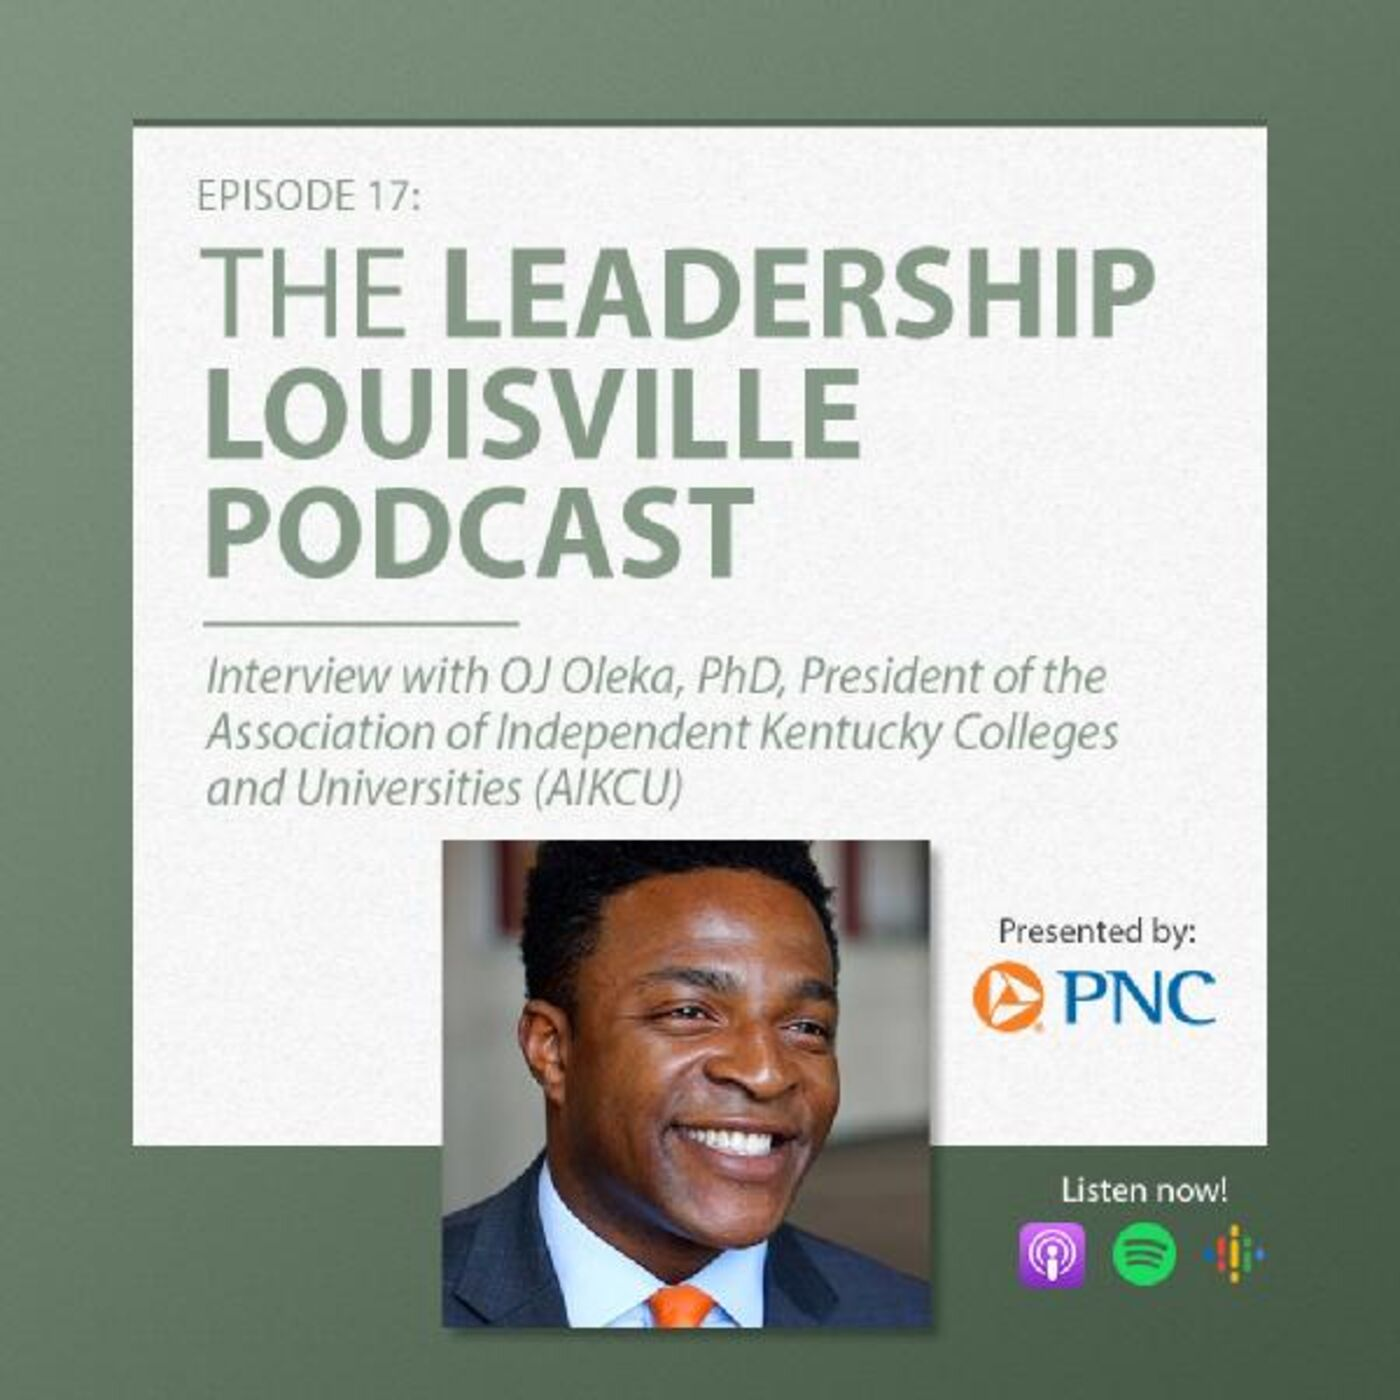 On raising people out of poverty with Dr. OJ Oleka, President of AIKCU